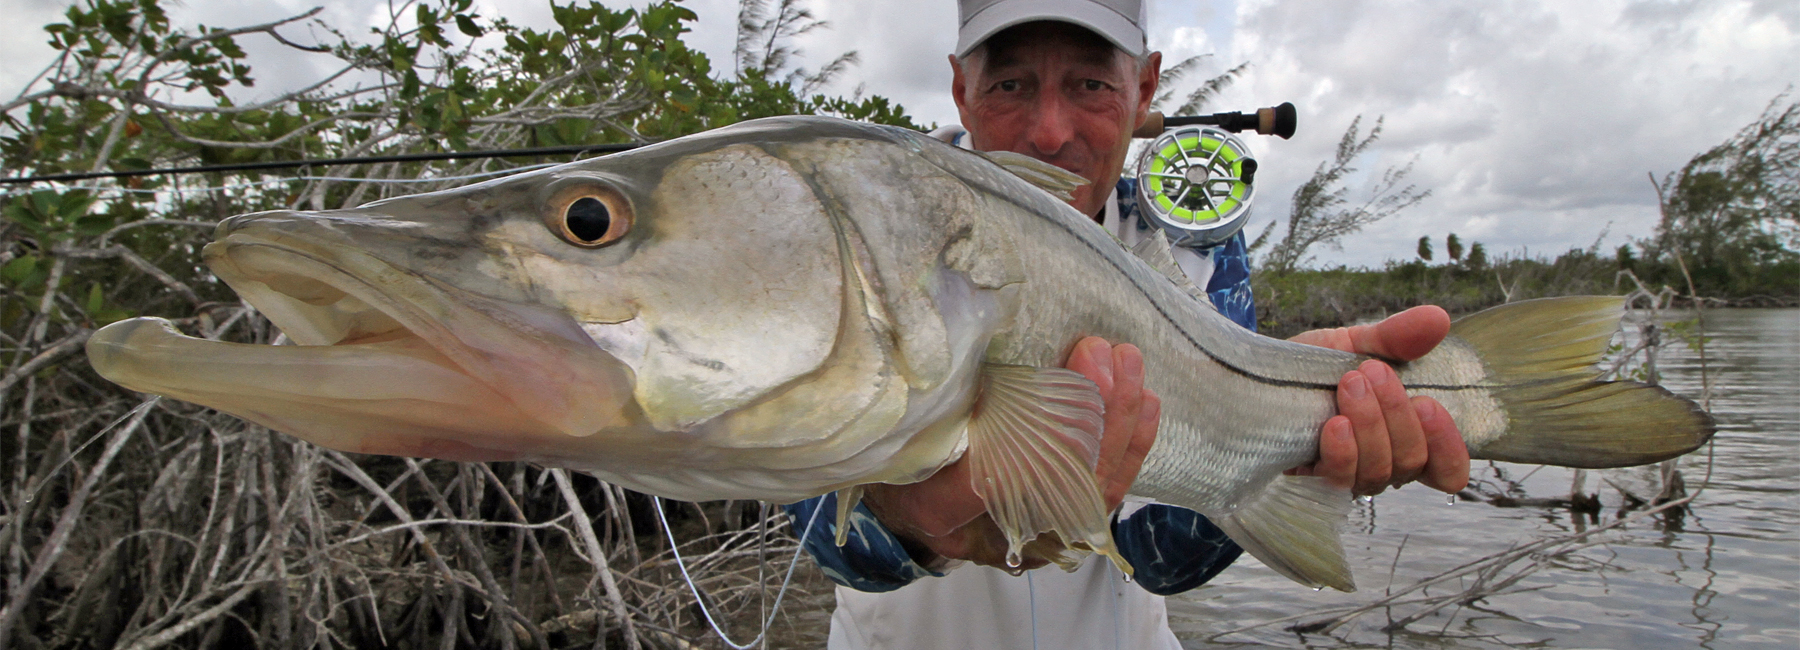 snook fly fishing snook fly fishing lodges